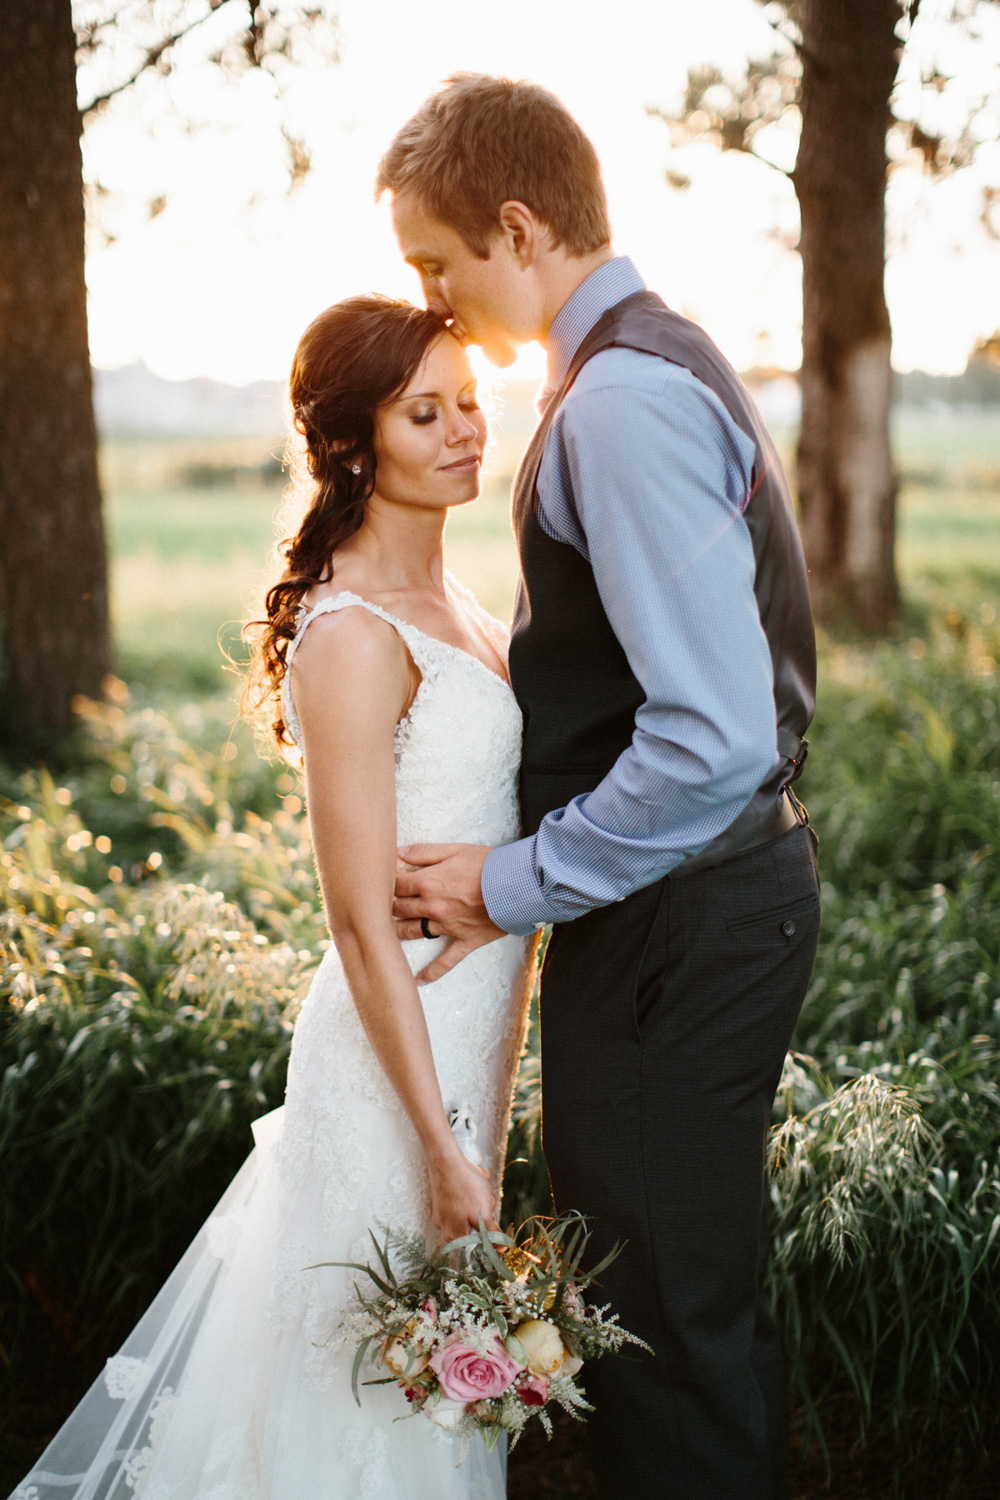 Outdoor_Wedding_SiouxFalls_MaryJoWegnerArboretum_Photographer_Calli&Jon_141.jpg